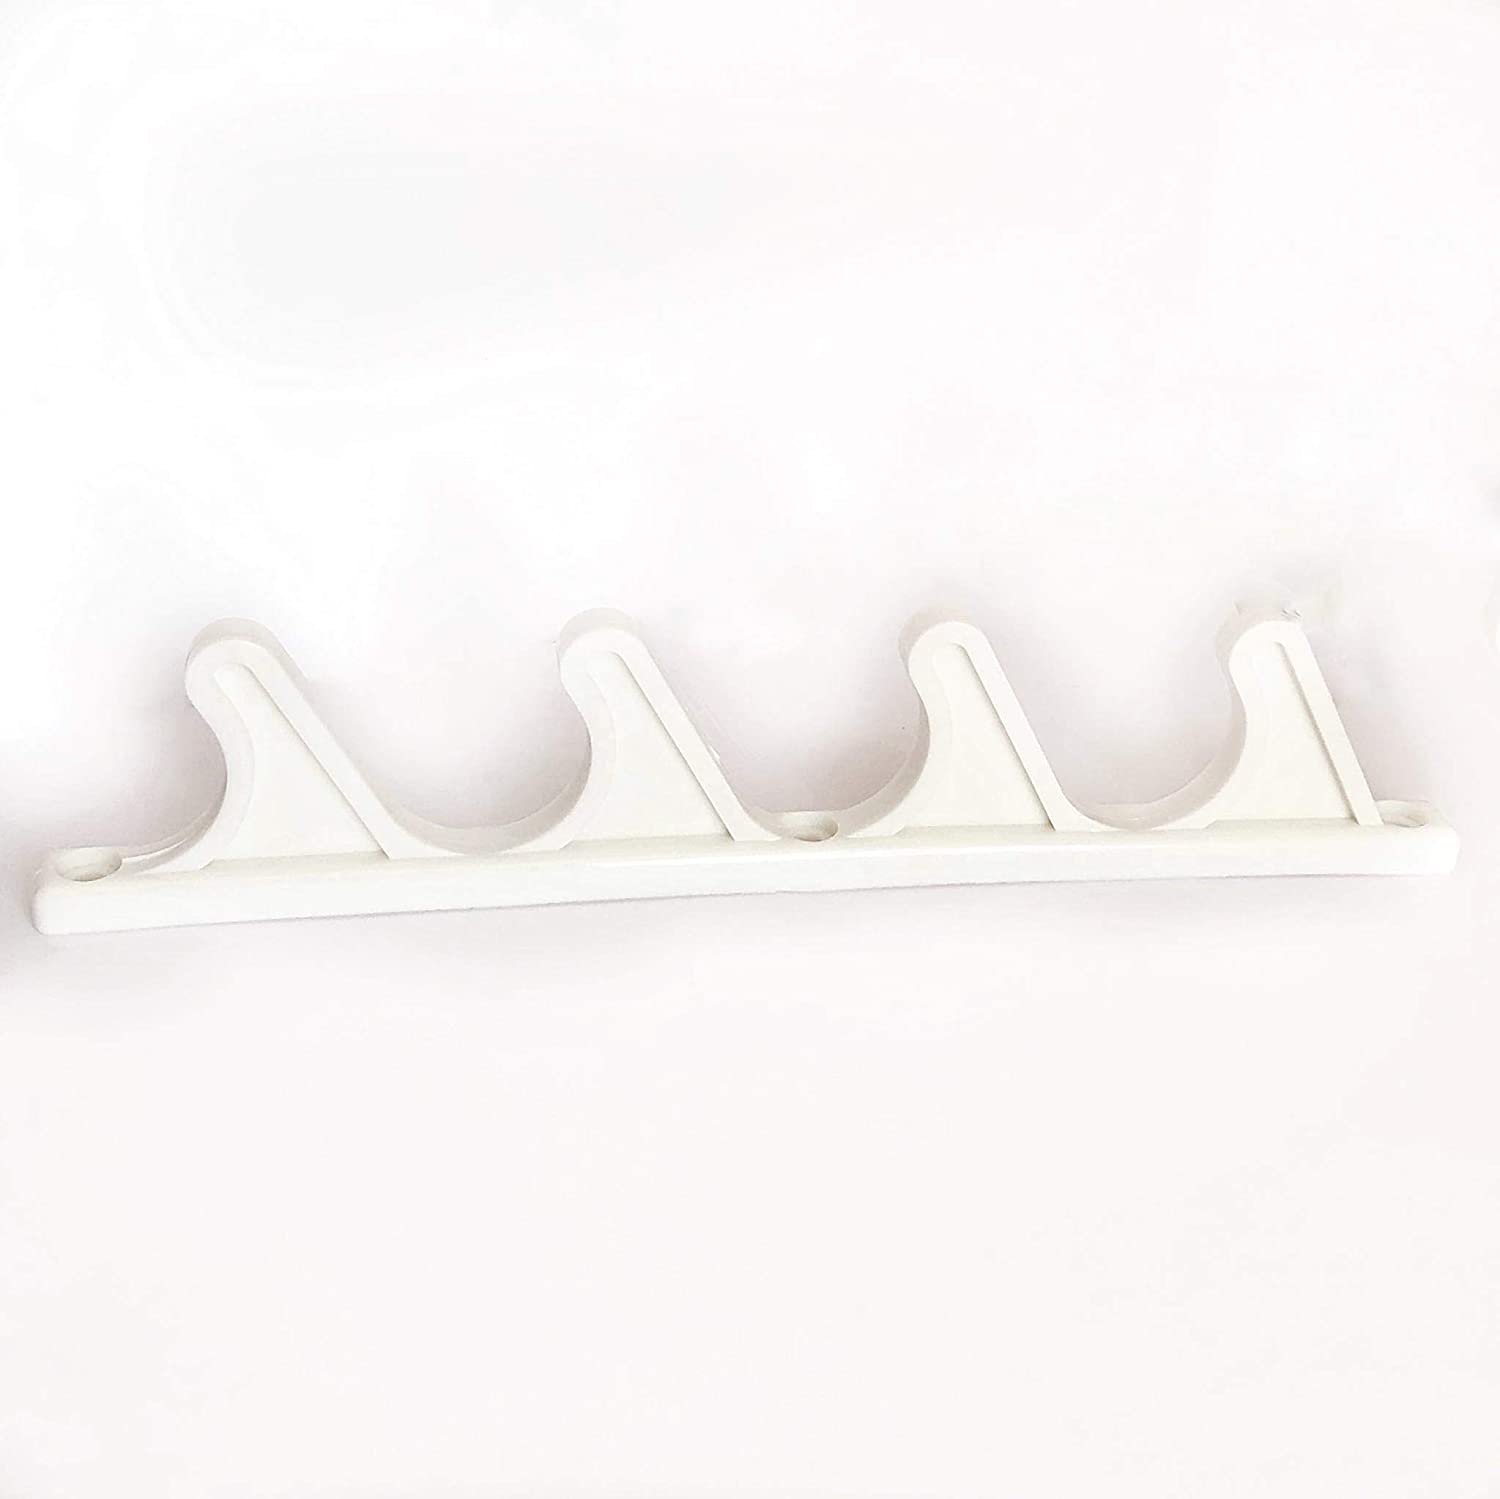 """4 pcs 4 Position Nylon Adjustment Brackets for Patio Outdoor Lawn Yard Furniture or Chaise Lounges, Replacement, Back Support, Back-Height Multi Position Adjuster 9 1/2"""" L x 1/2"""" W (White)"""